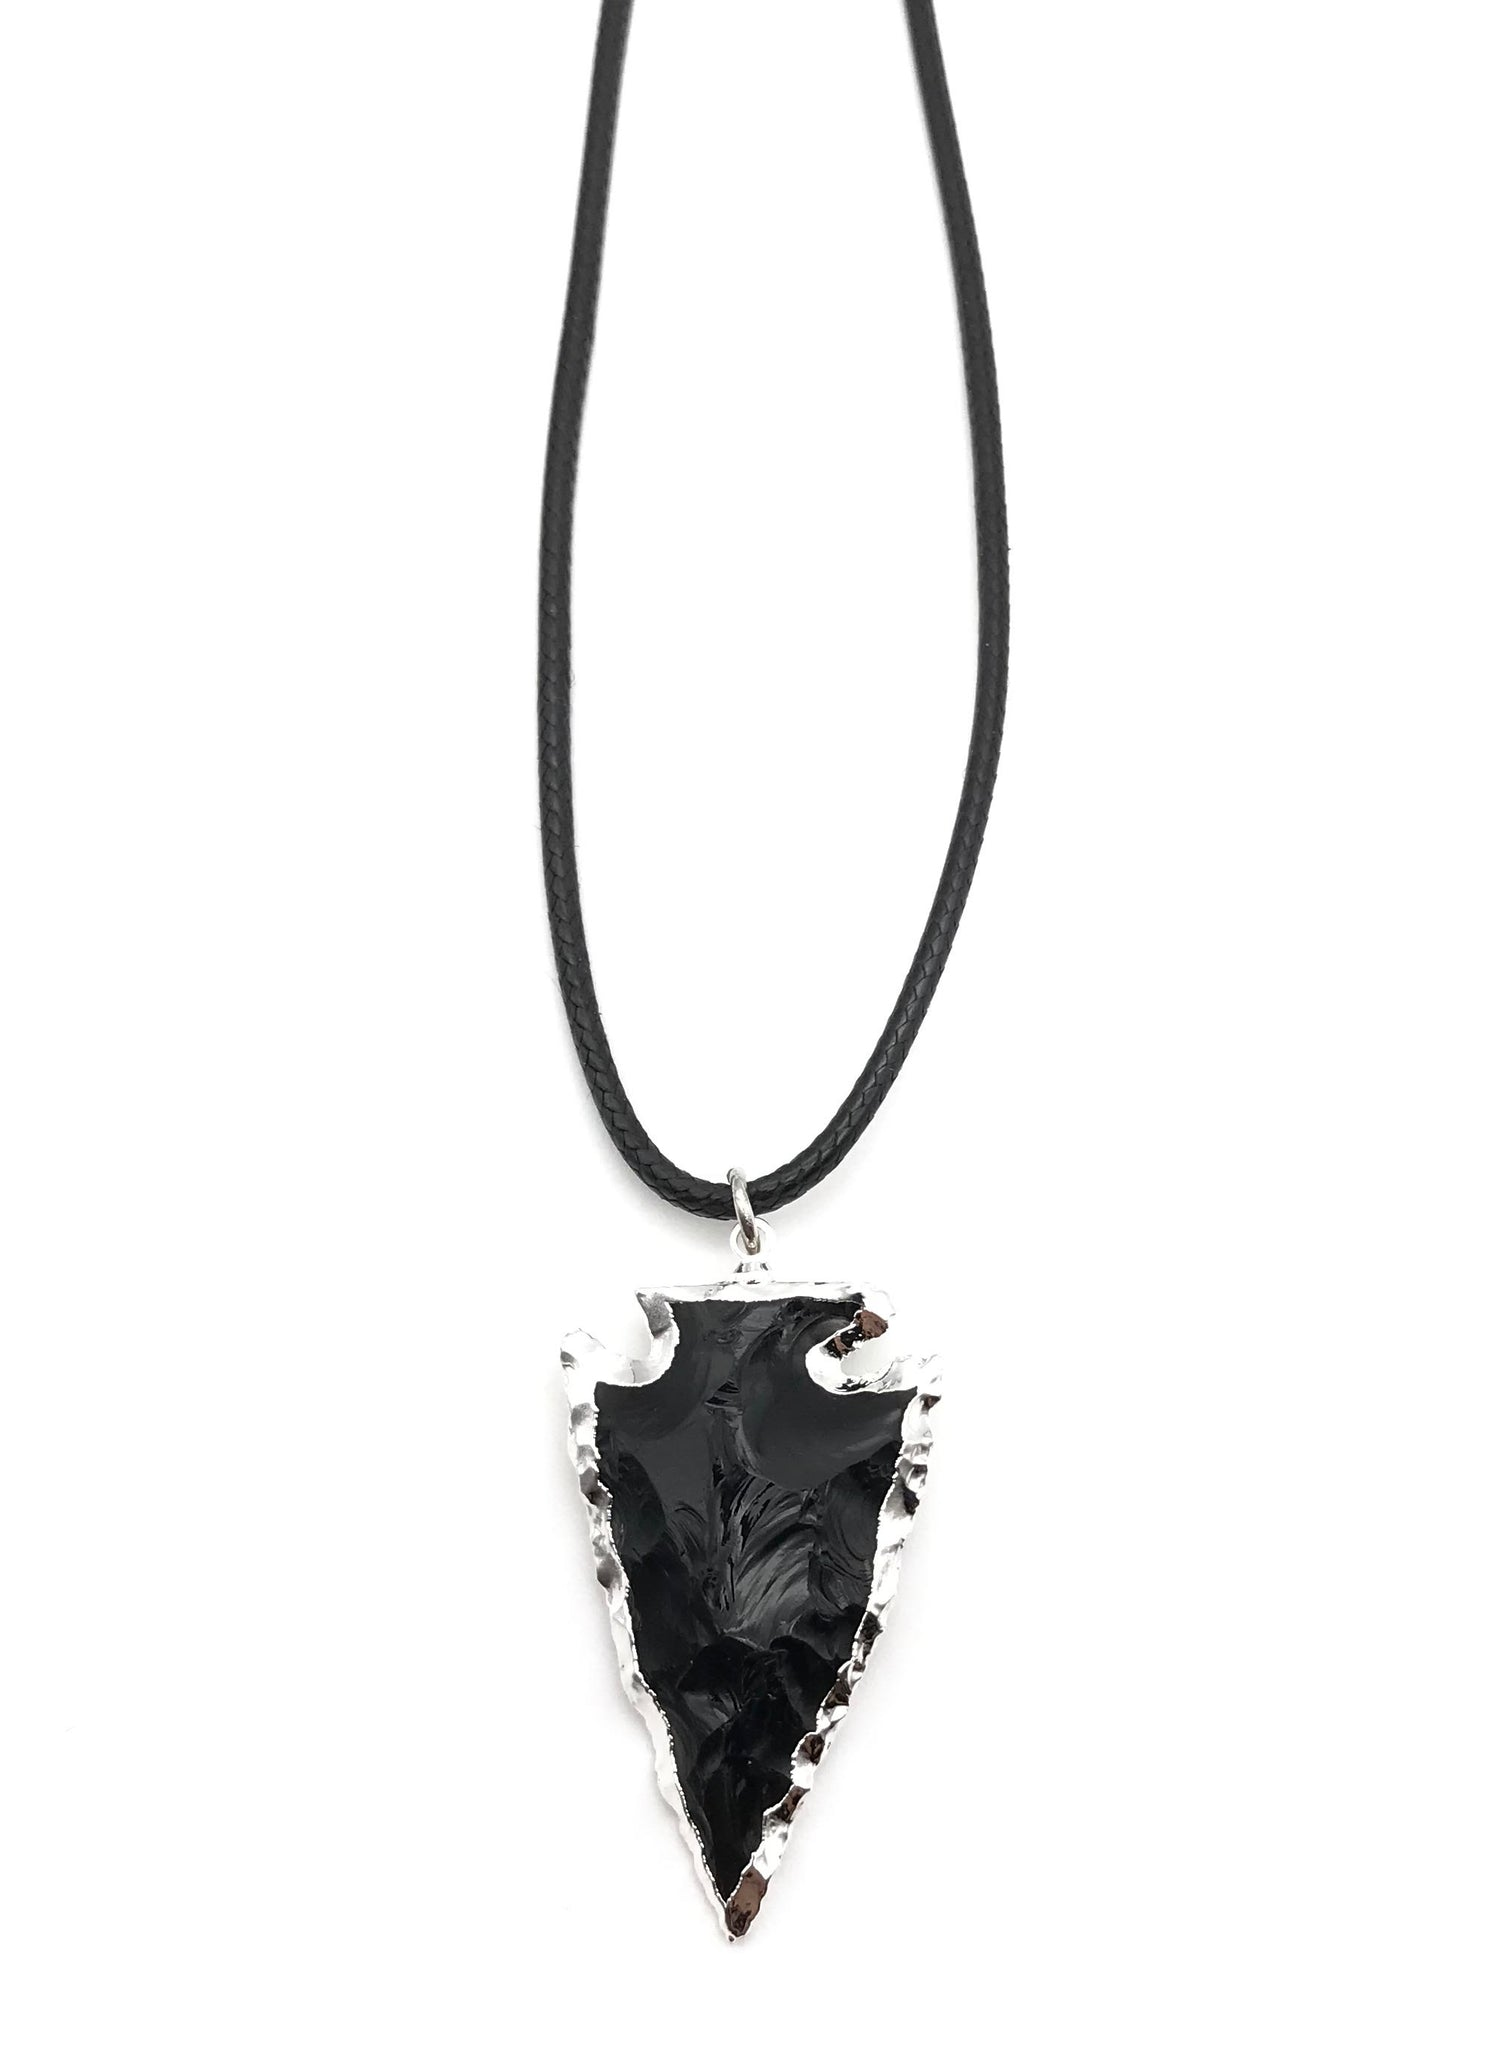 BLACK OBSIDIAN ARROWHEAD CORD NECKLACE